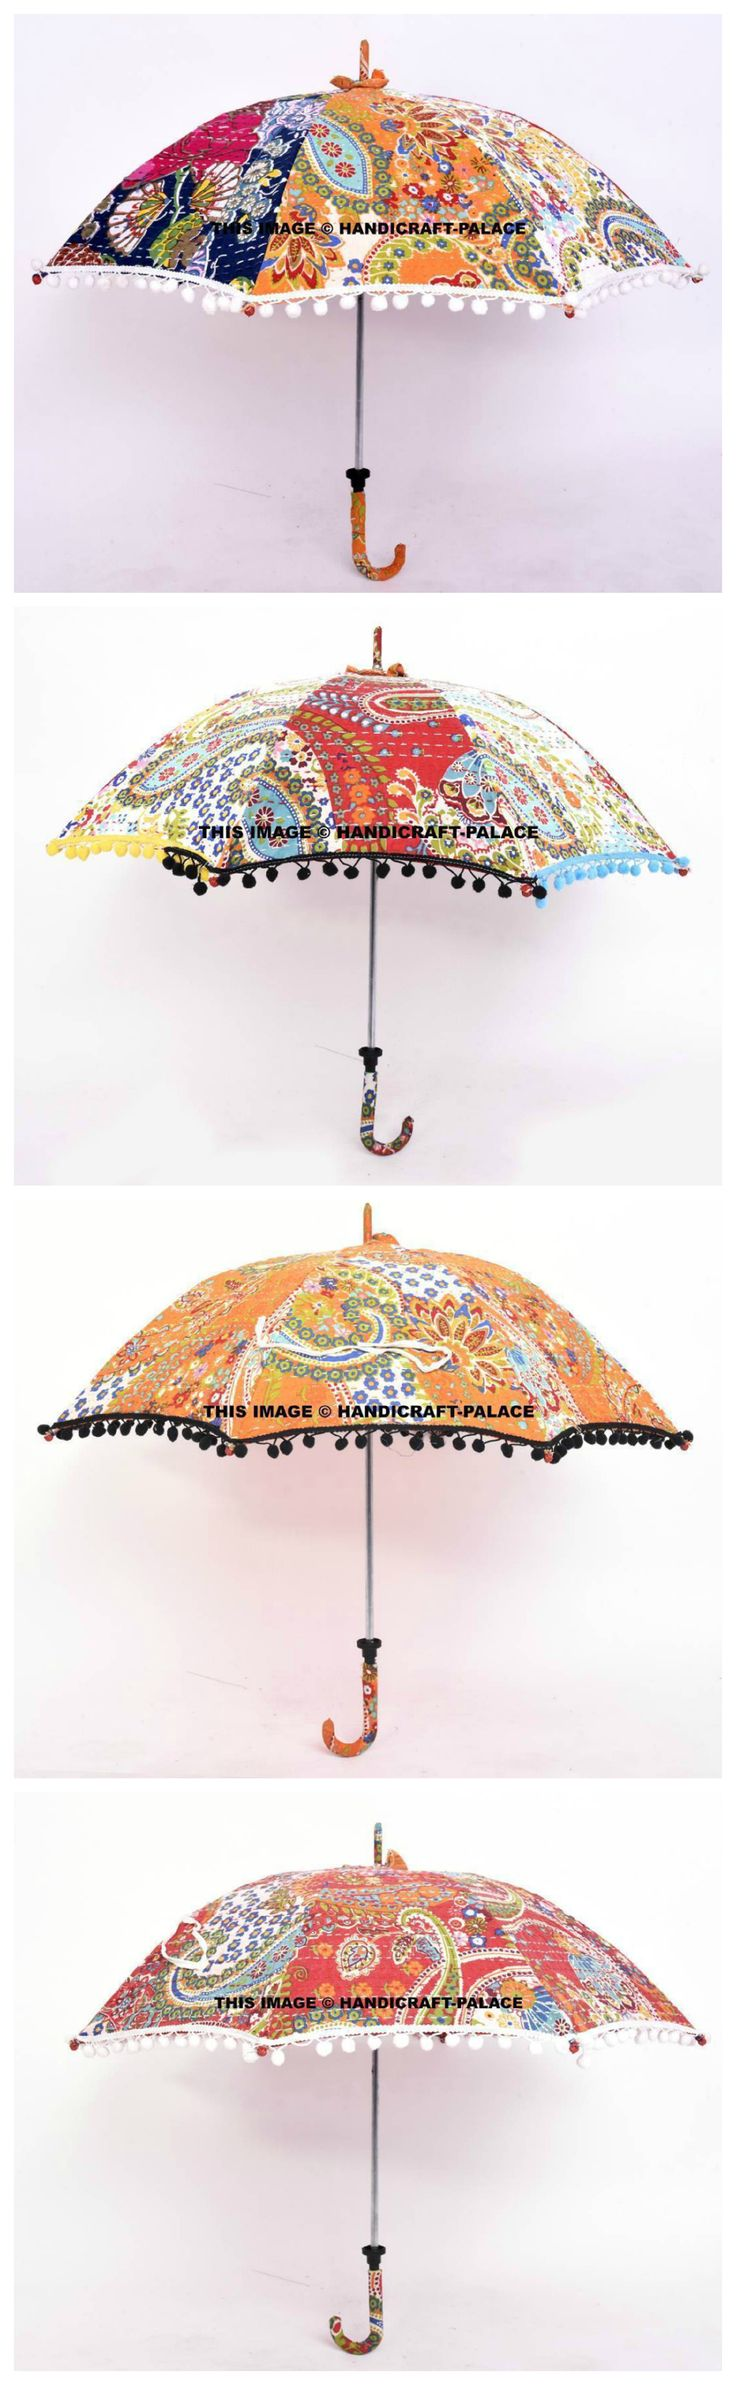 Wholesale Lot 10 PC Traditional Indian Kantha Embroidered Sun Umbrella Parasols. Beautiful Indian Cotton Fabric Kantha Work umbrella is handcrafted by village artists in Rajasthan .Umbrella has colored Pom Pom Lace. #traditional #ethnic #Indian #India #love #beauty #hippie #gypsy #boho #bohemian #party #wedding #decor #ideas #colourful #wedding #decor #idea #royal #India #handmade #love #life #theme #party #Free #shipping #handicraftpalace